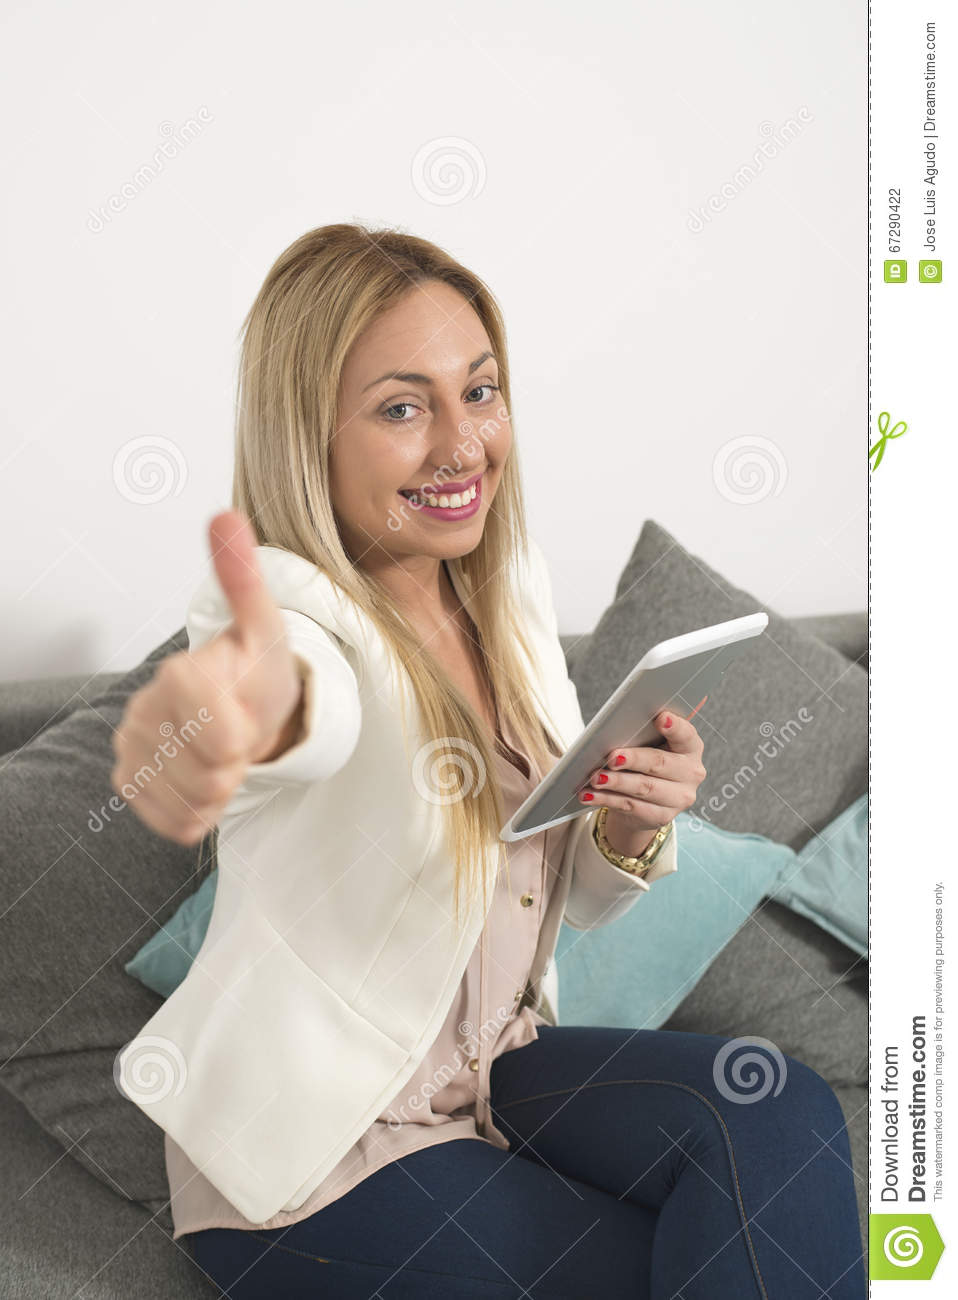 Atracttive woman with a tablet